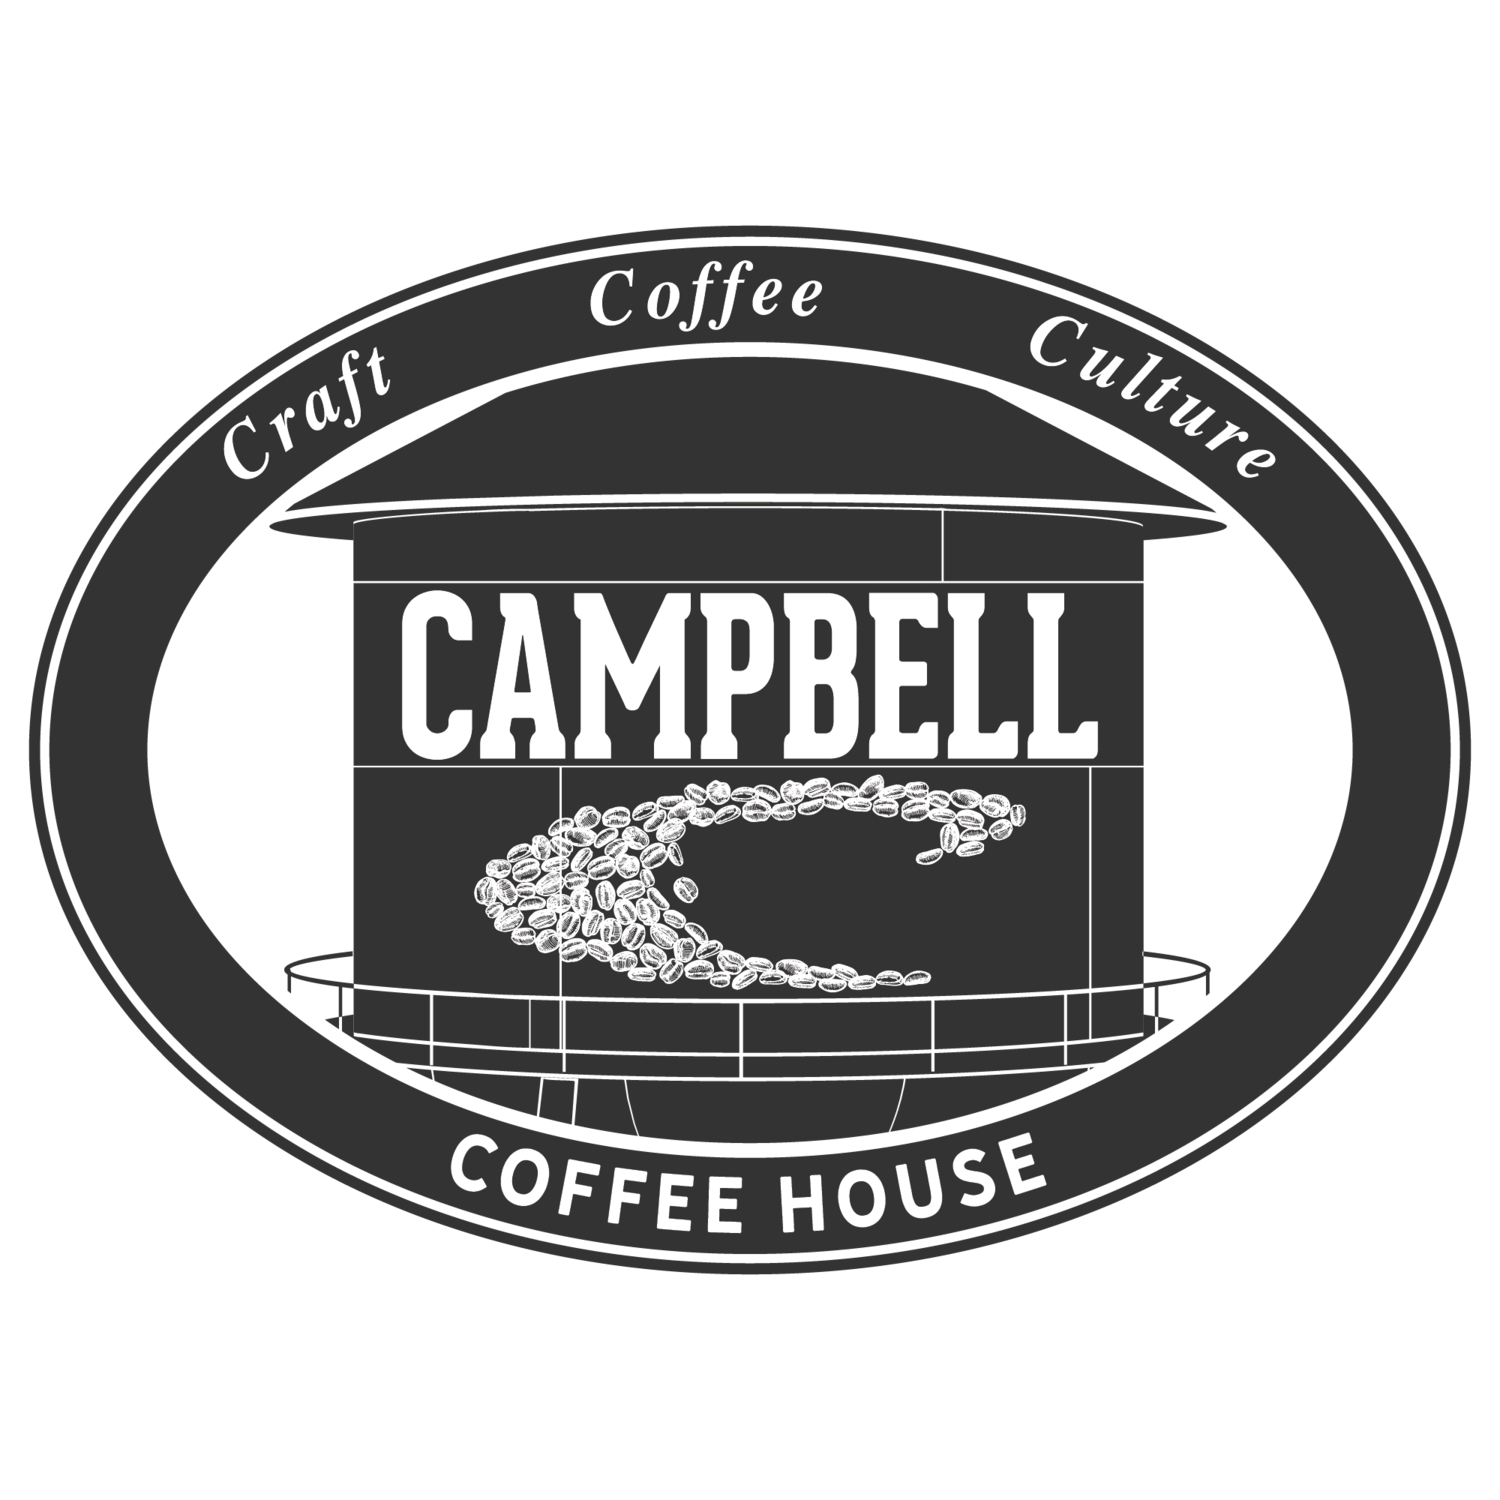 Campbell Coffee House